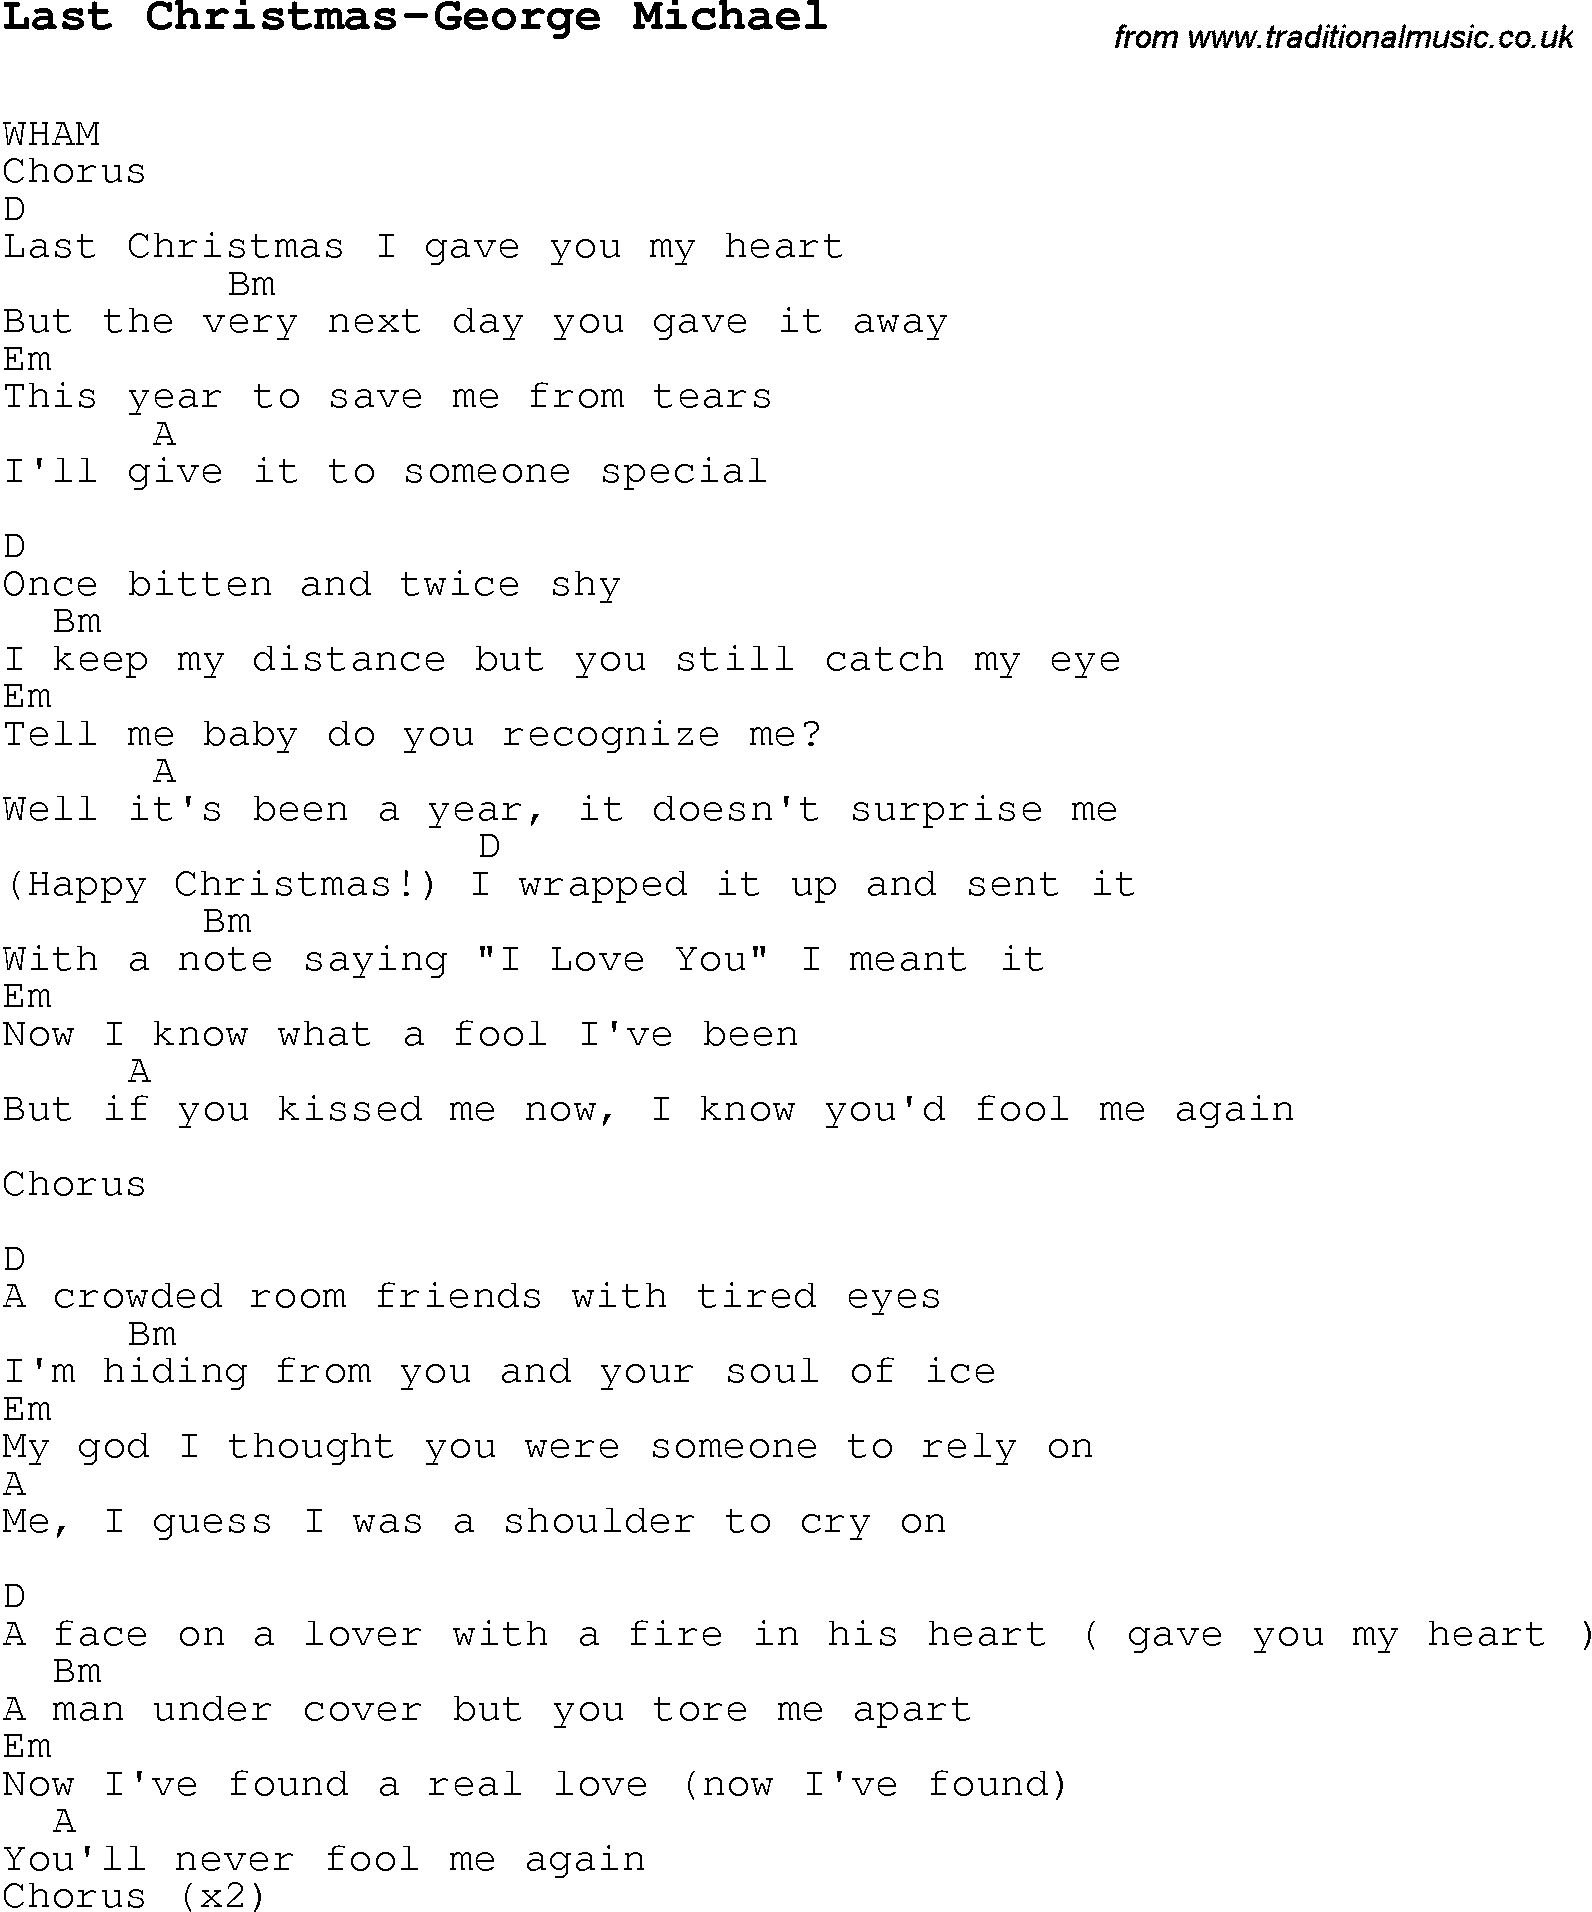 Ill Be Home For Christmas Chords.Christmas Carol Song Lyrics With Chords For Last Christmas